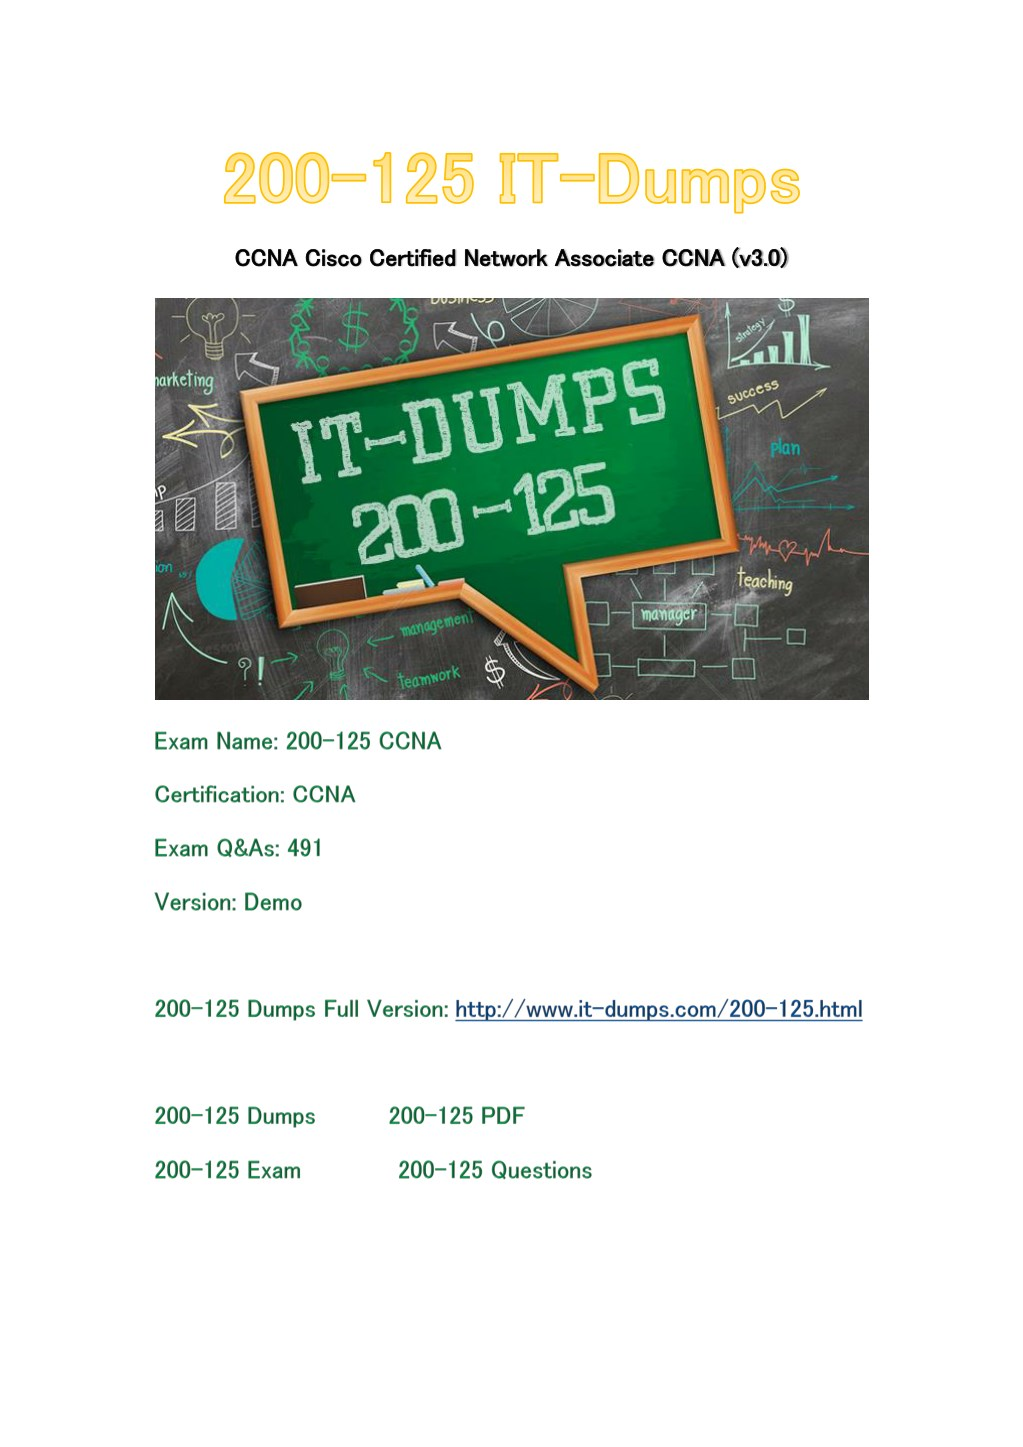 Ppt the latest cisco 200-125 exam study guide and free dumps.